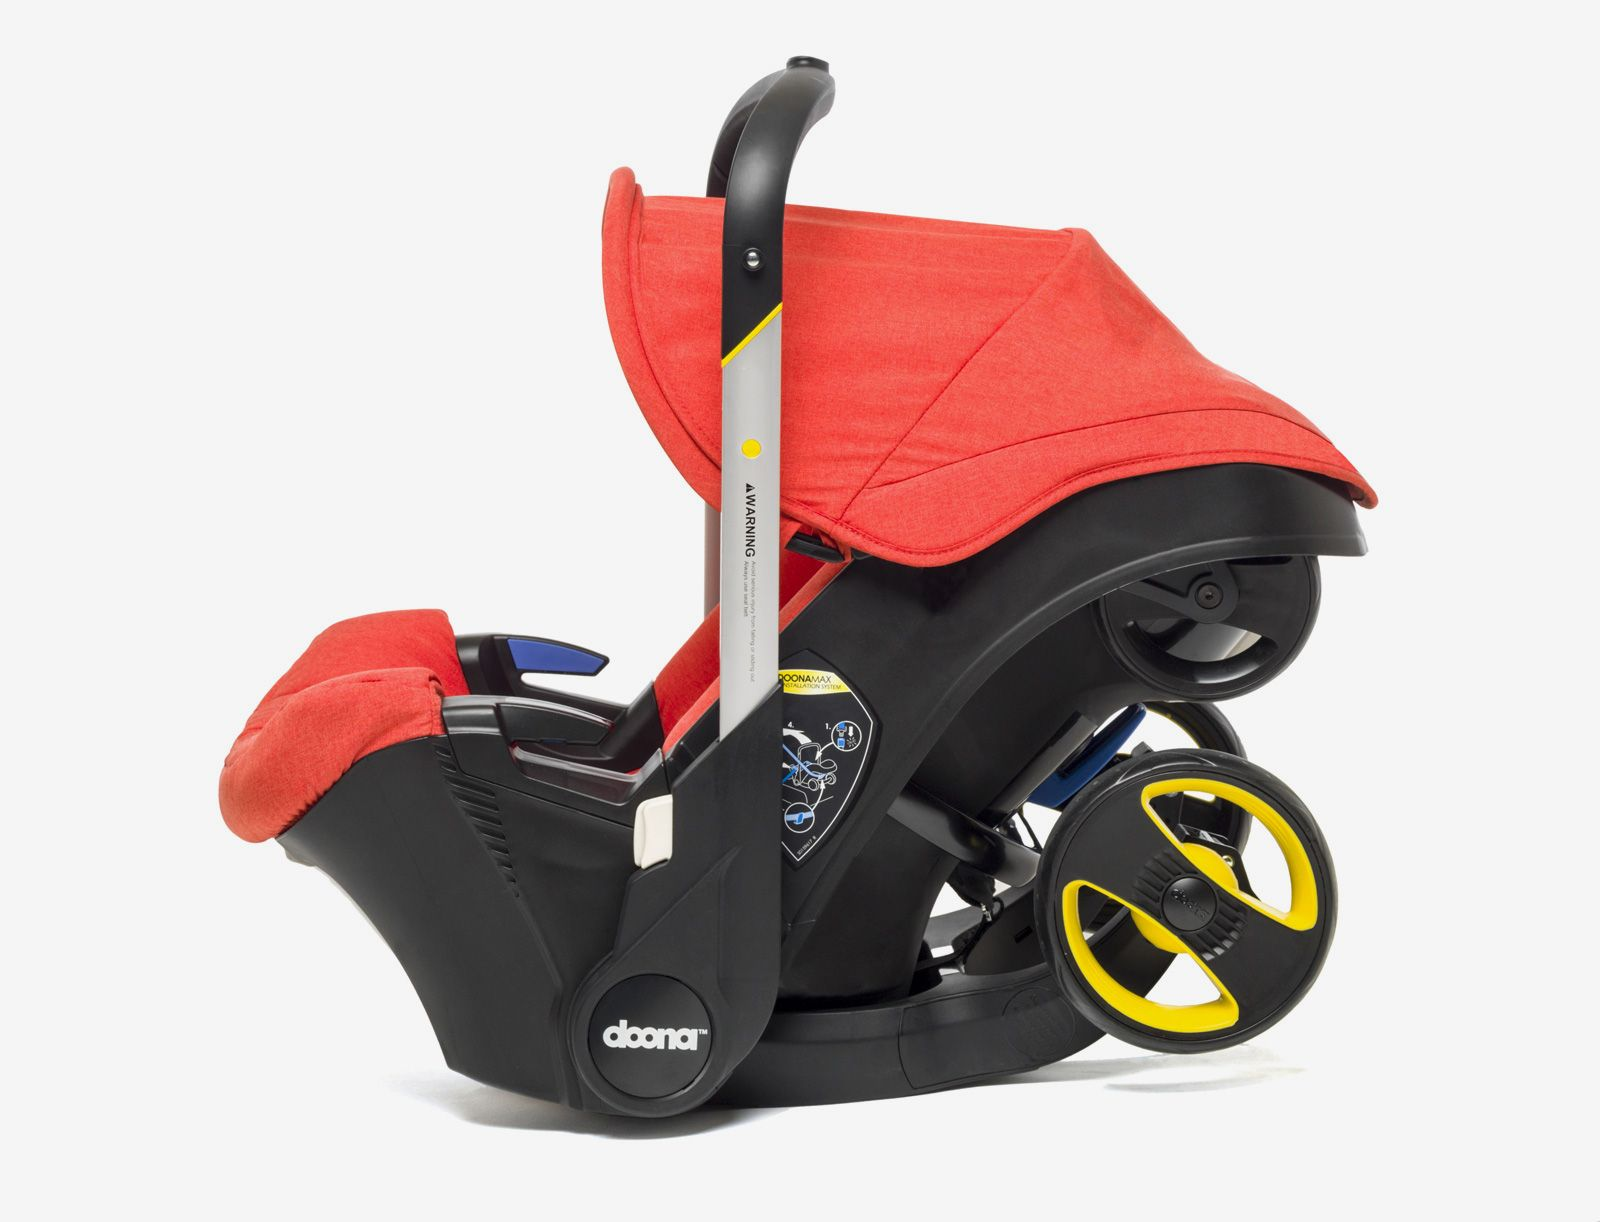 Doona the next generation car seat/stroller combo